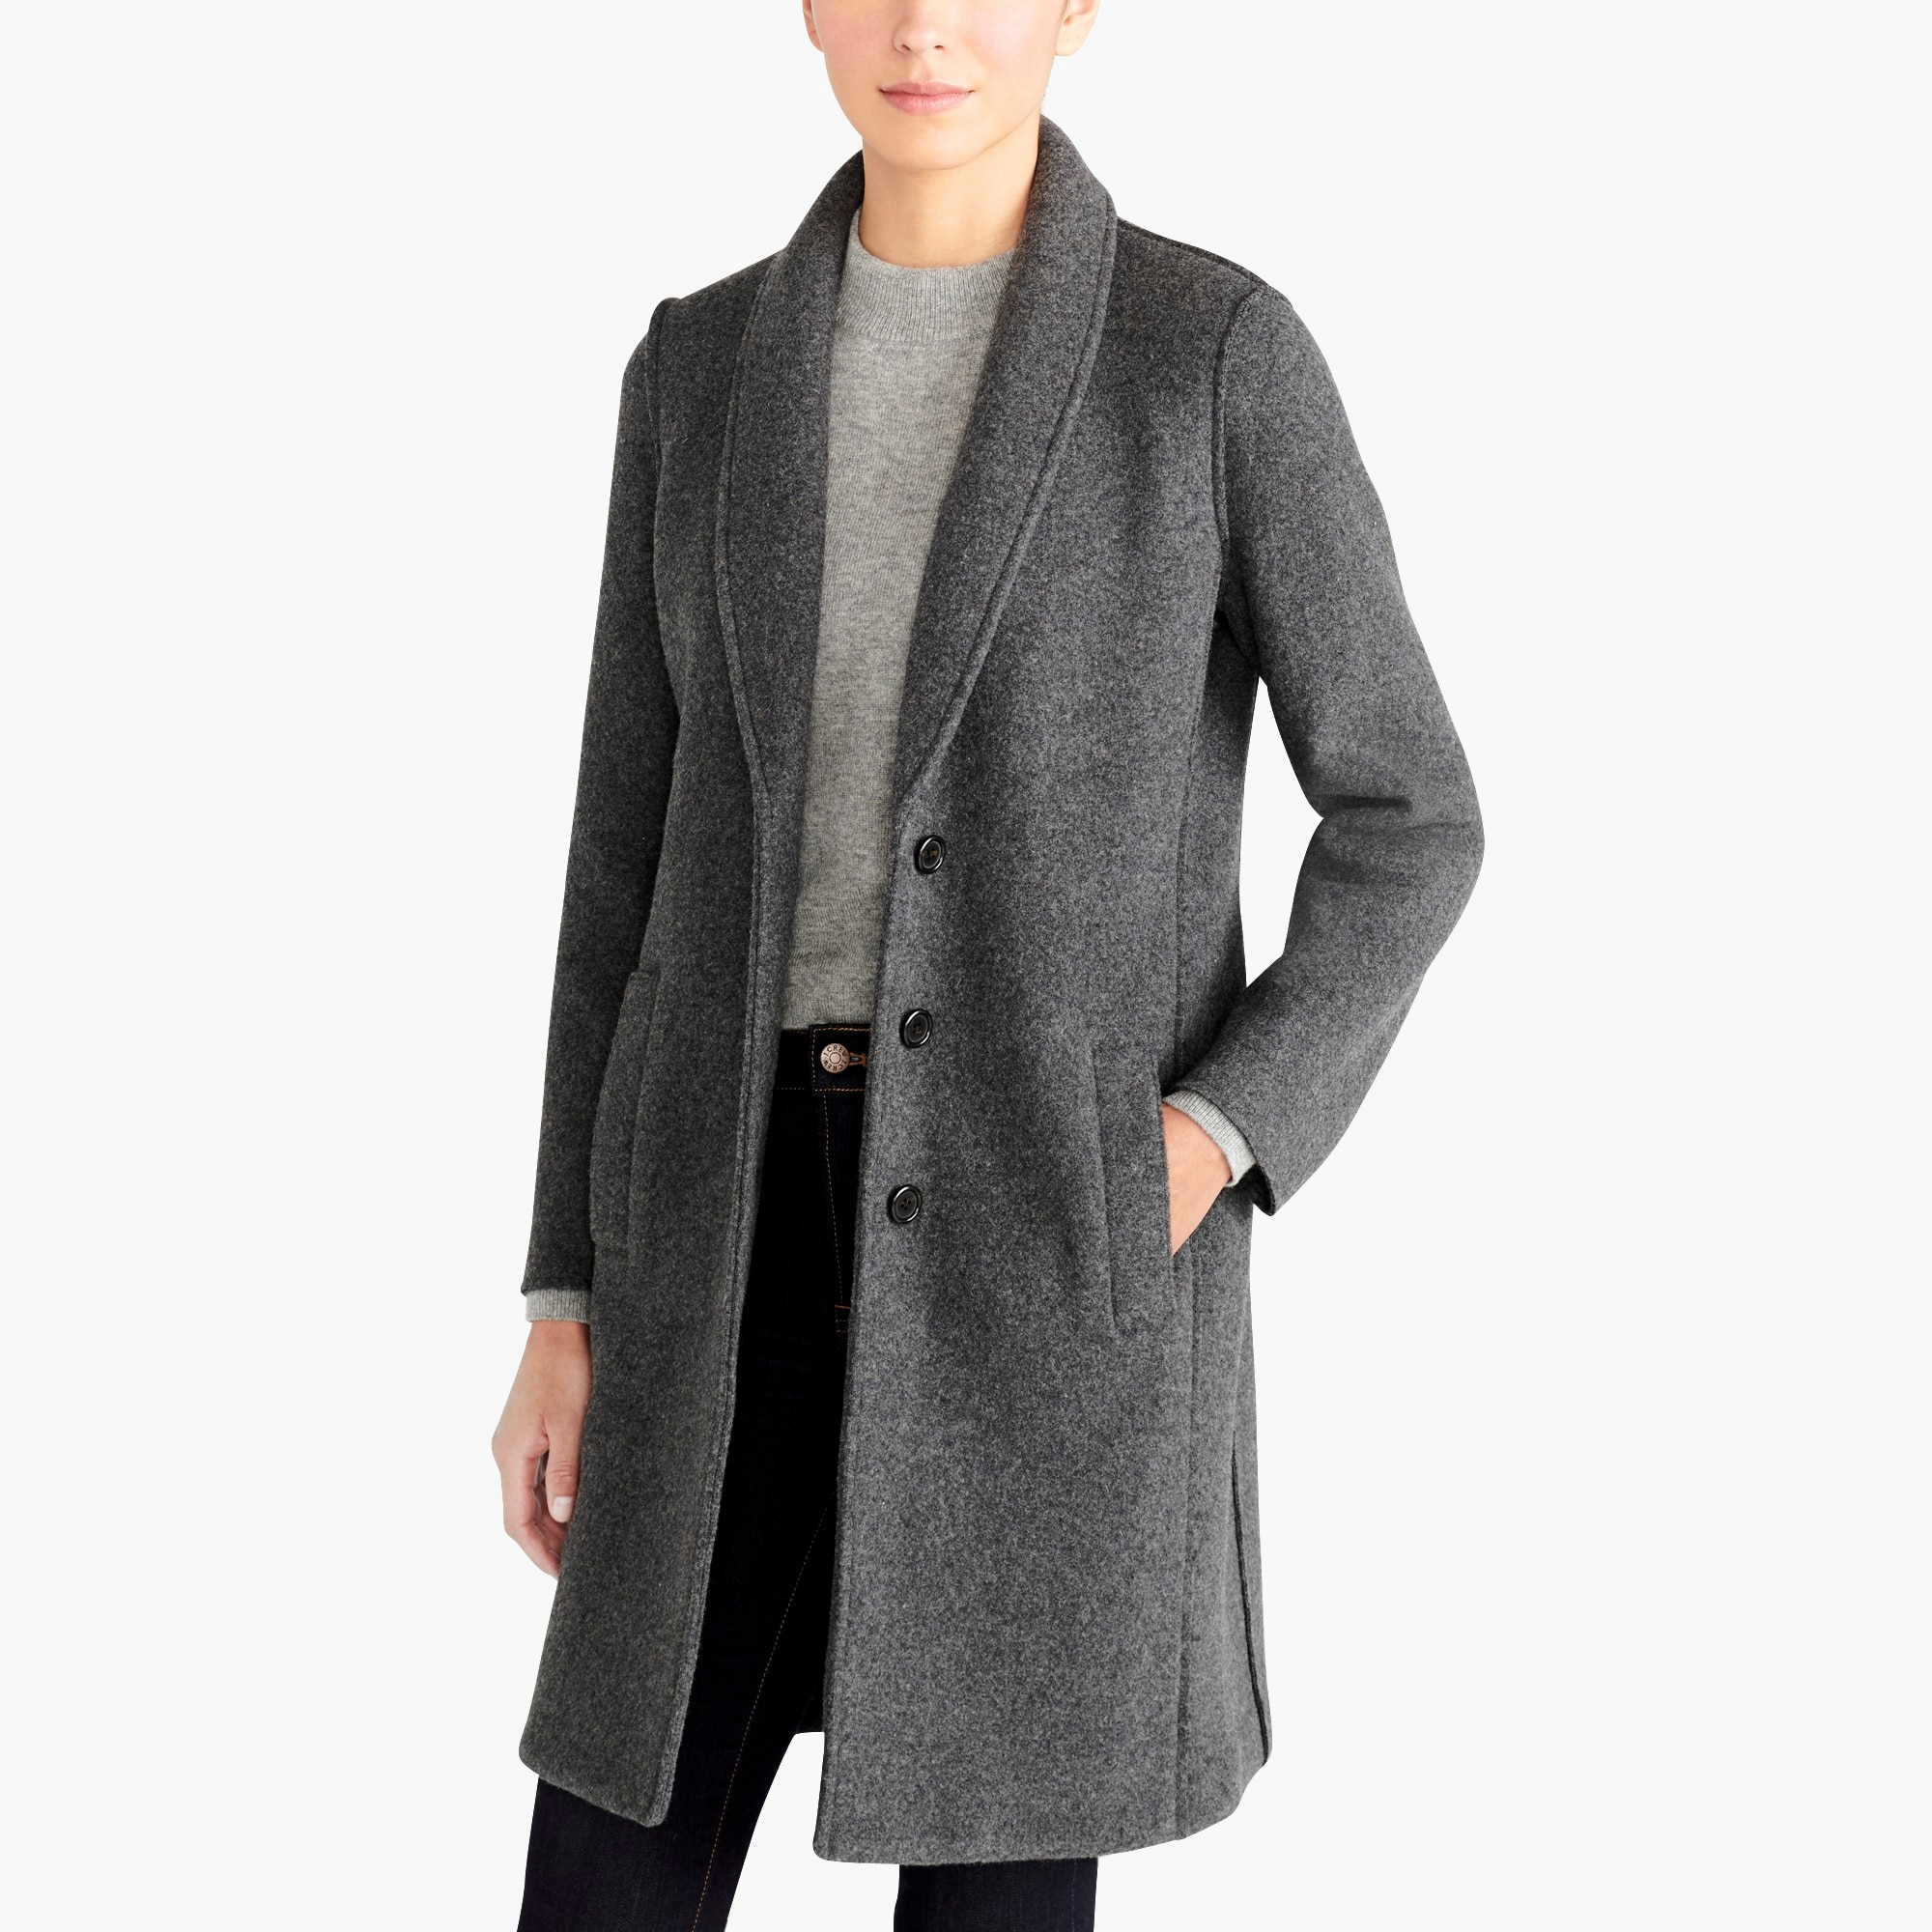 boiled wool topcoat : factorywomen wool coats